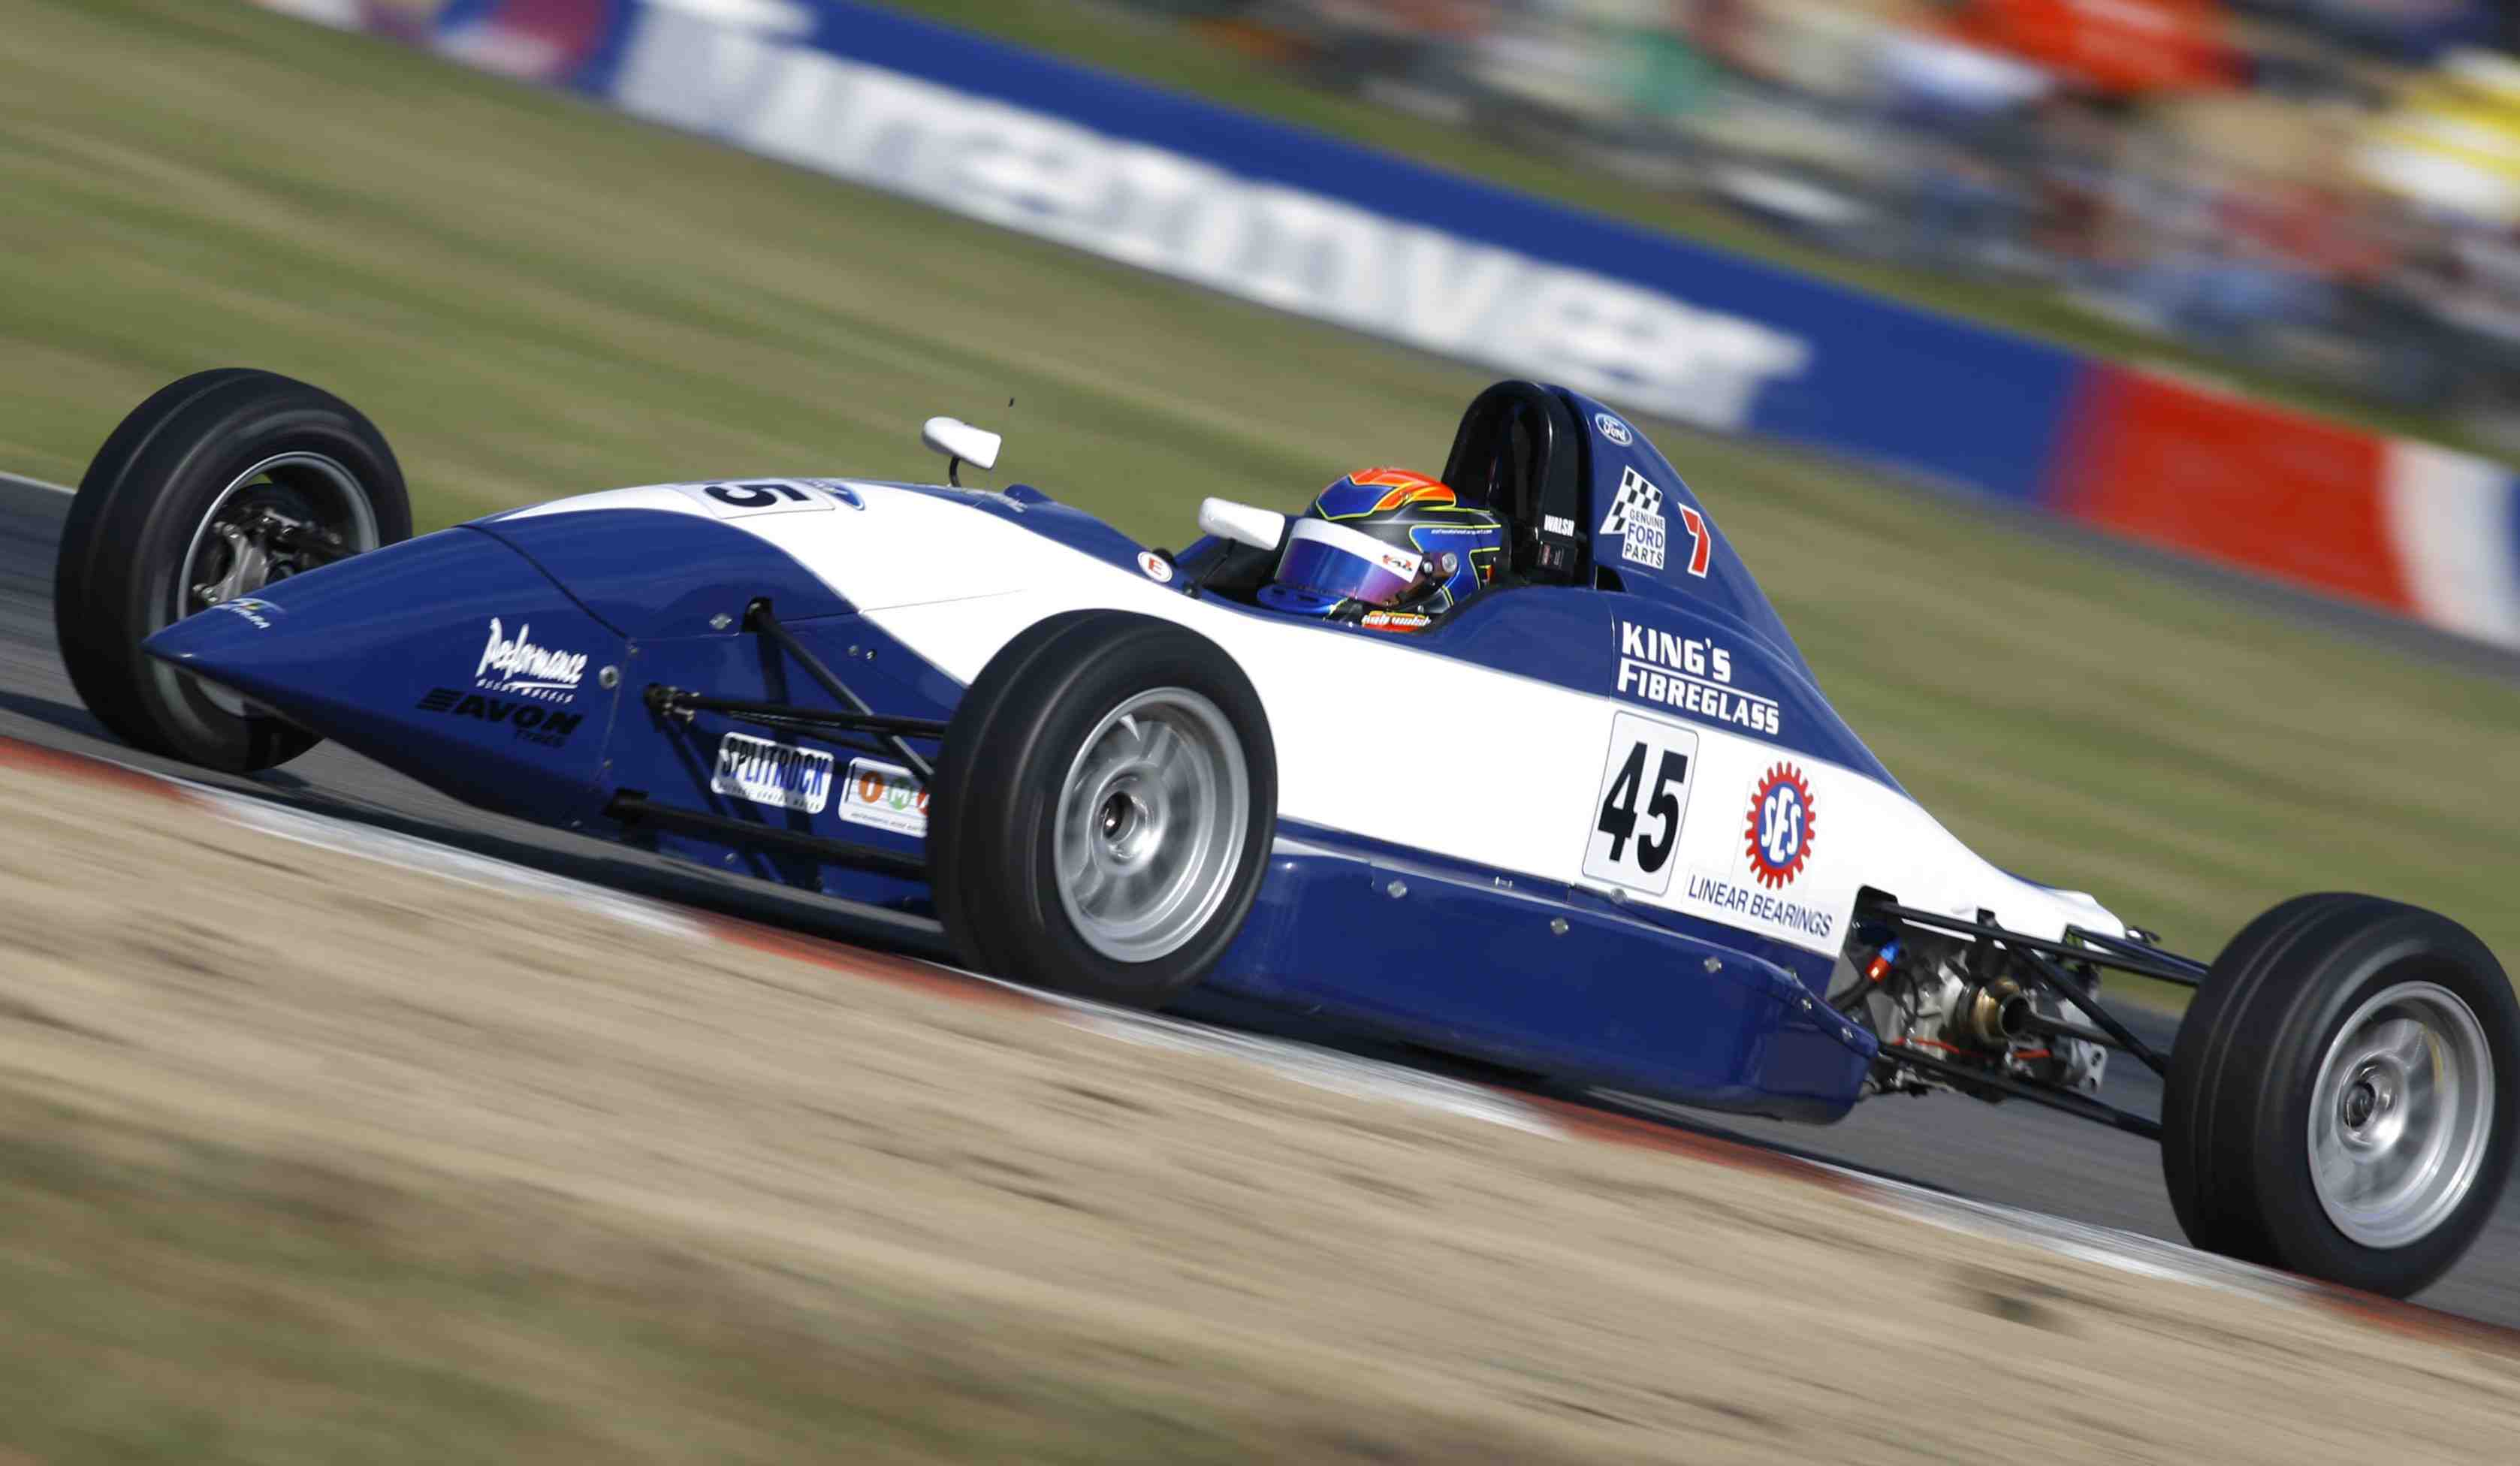 Ashley Walsh during the Winton Motor Raceway, round 03 of the 2009 Formula Ford Championship at the Winton Motor Raceway, Winton, Victoria, May 16, 2010.